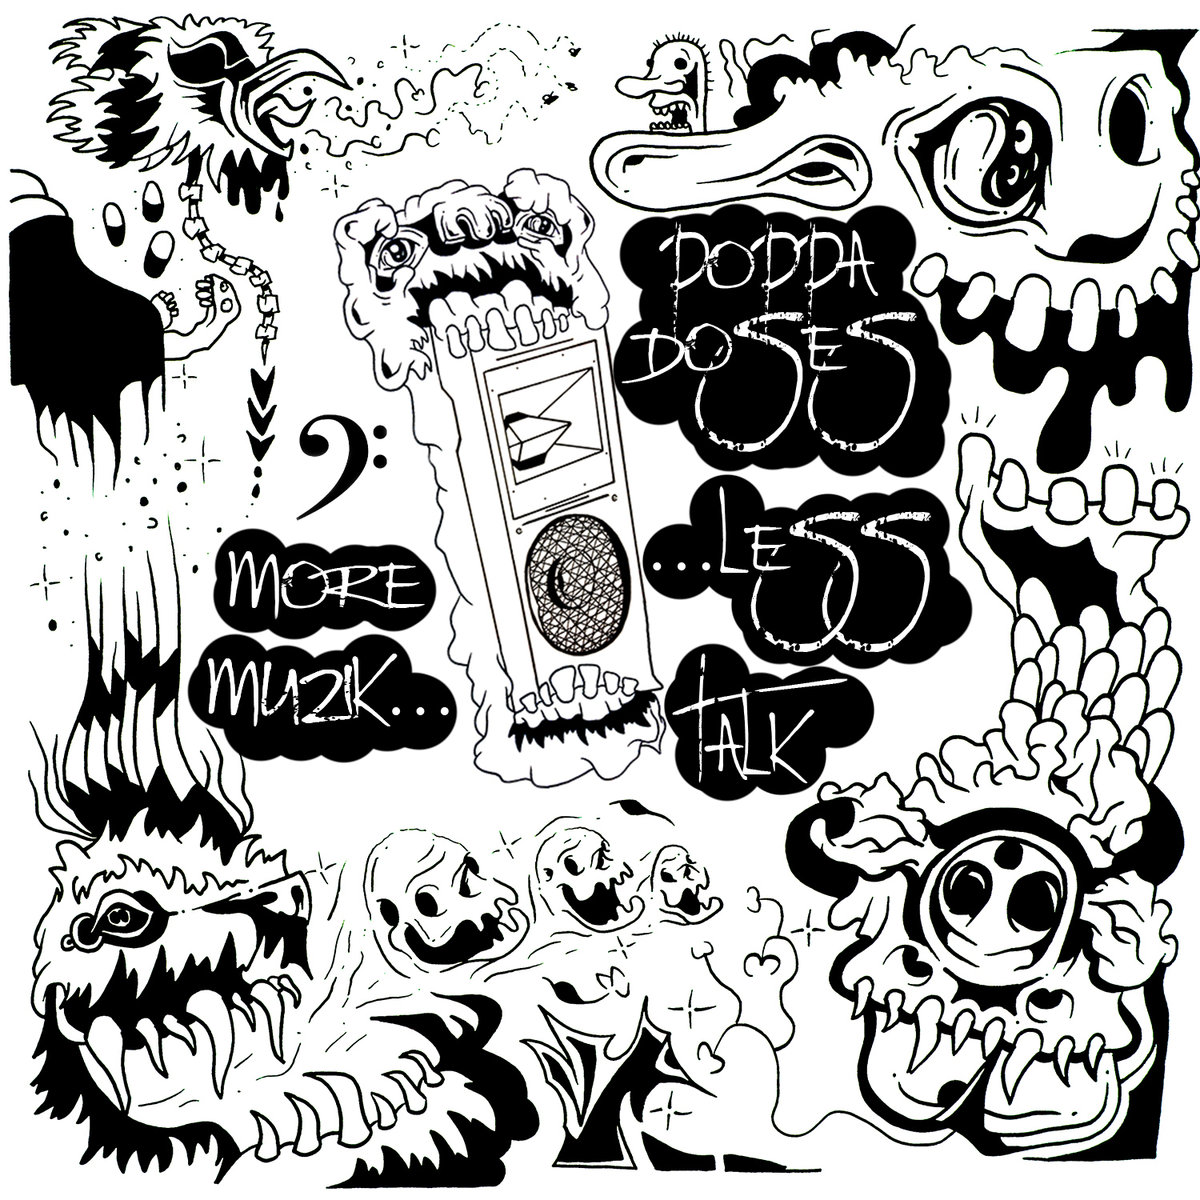 Poppa Doses - More Muzik Less Talk @ 'More Muzik Less Talk' album (electronic, dubstep)